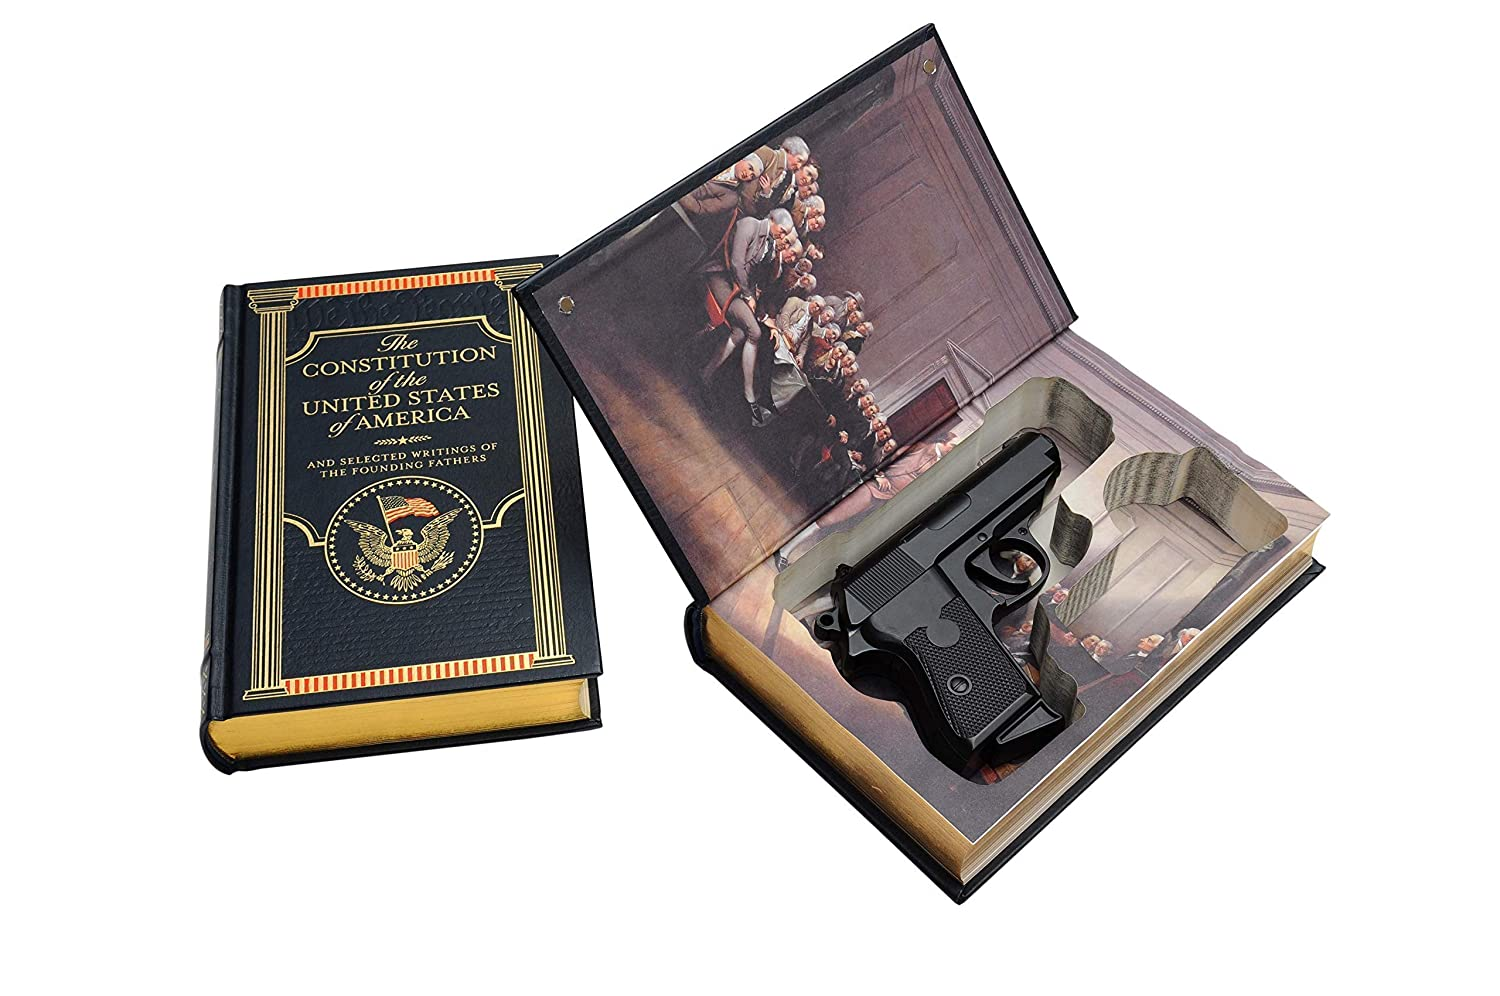 Concealed Gun Storage for Compact Handguns - US Constitution Hollow Real Book Gun Safe - Gift for Gun Owner - Home Car Carry Defense